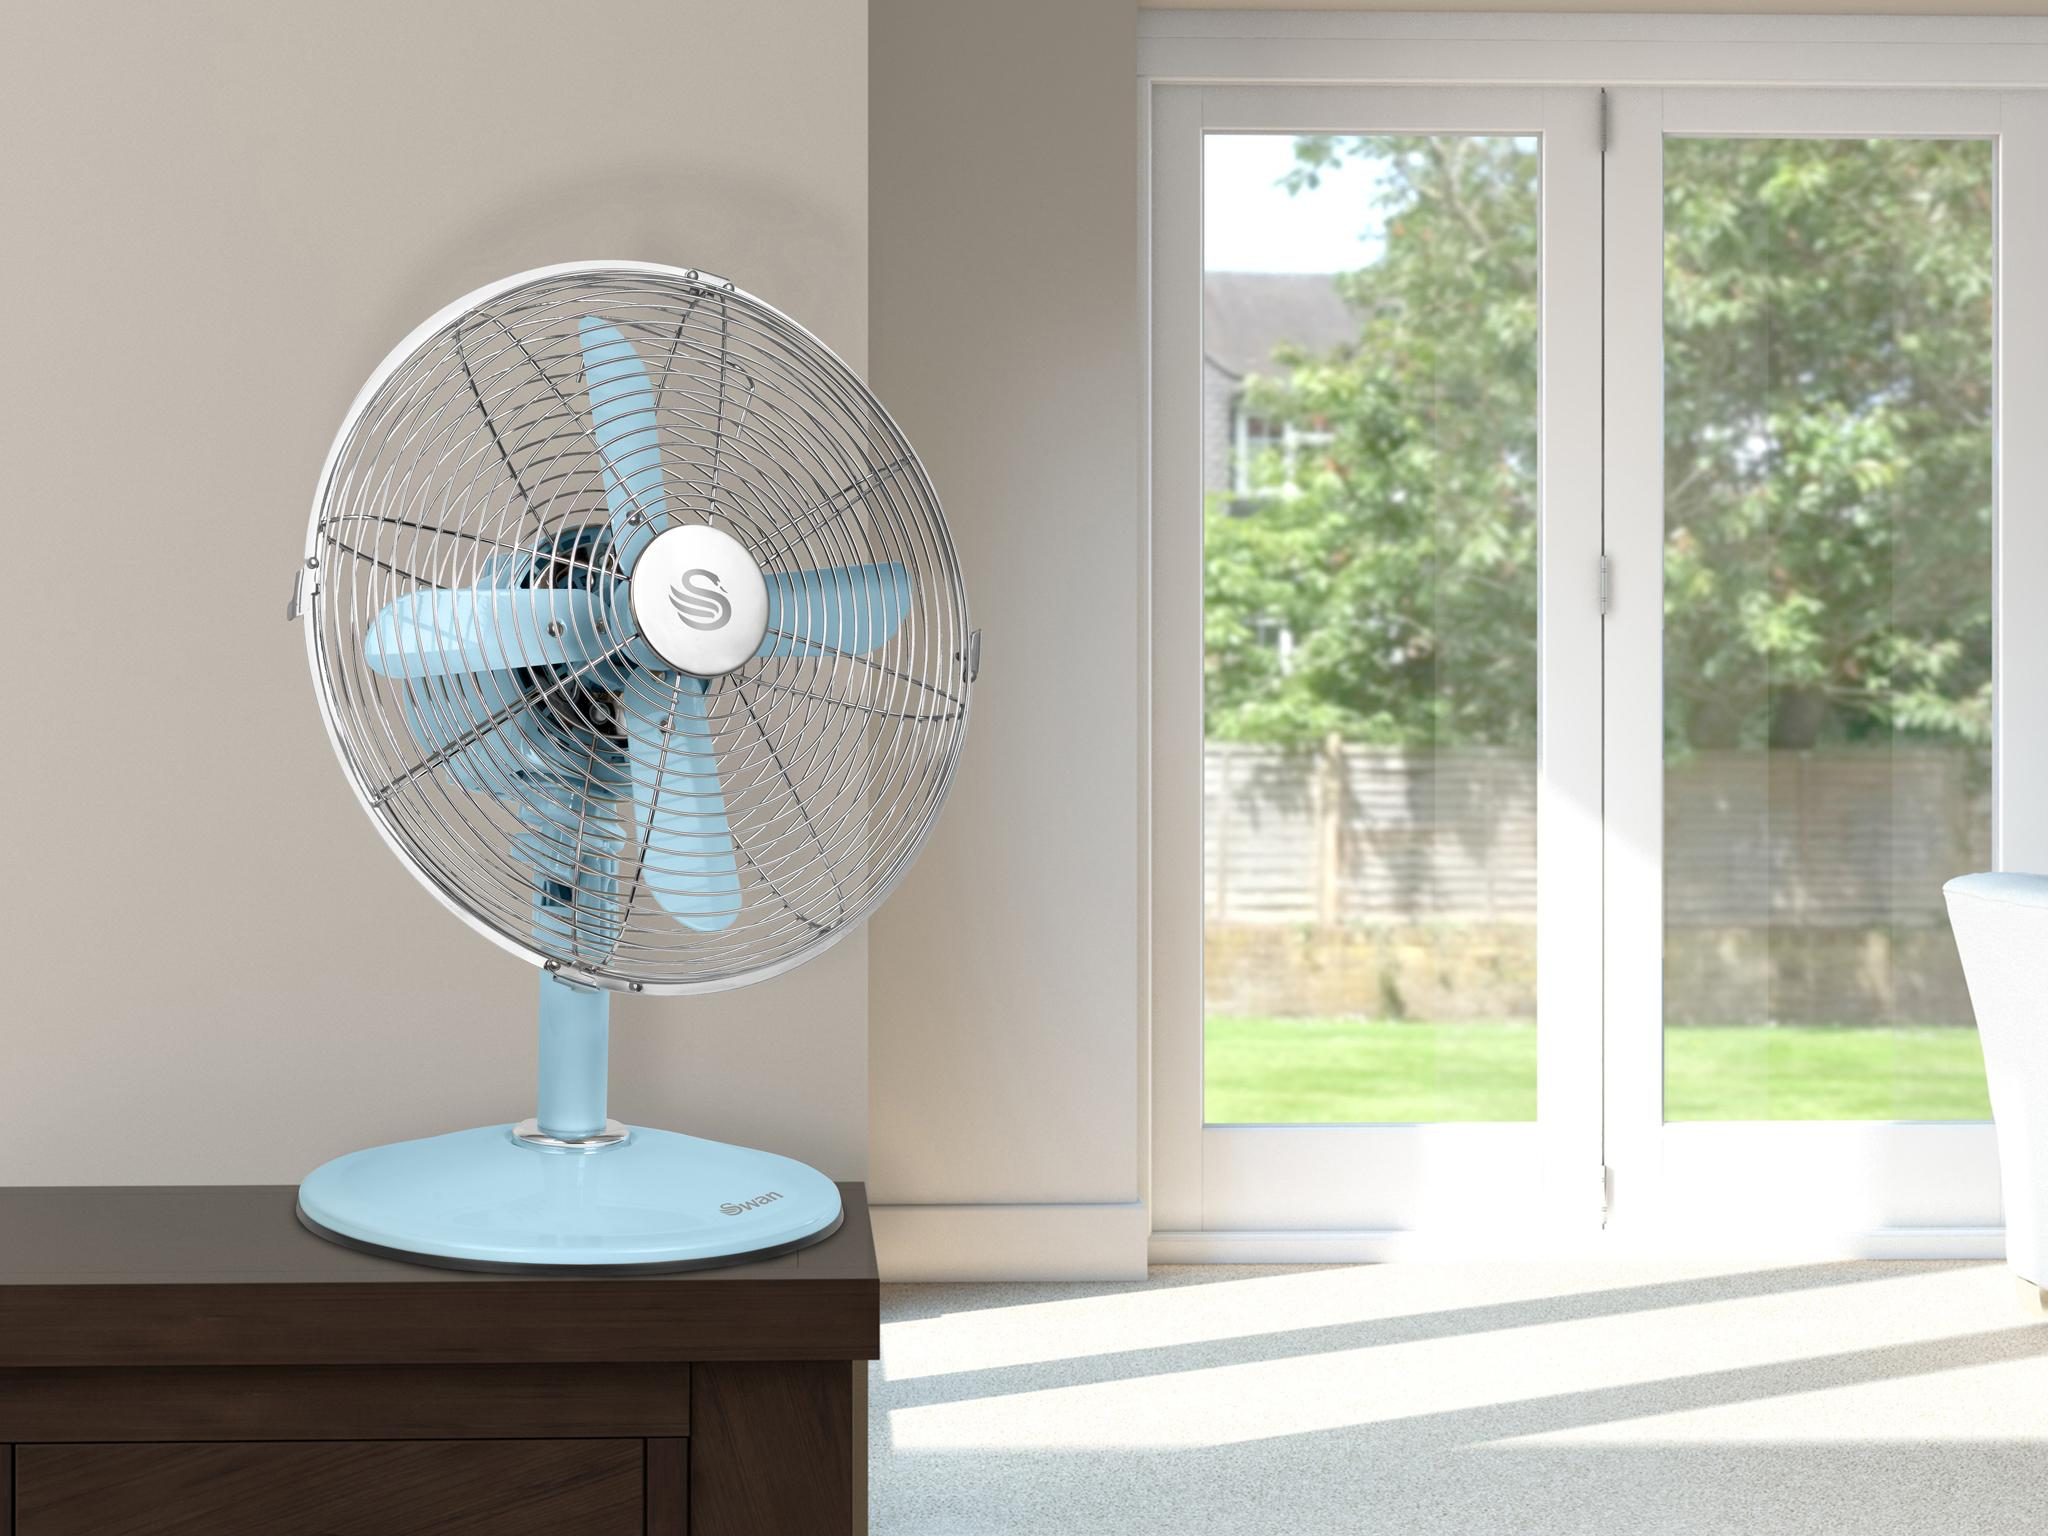 Table Fans vs Pedestal Fans